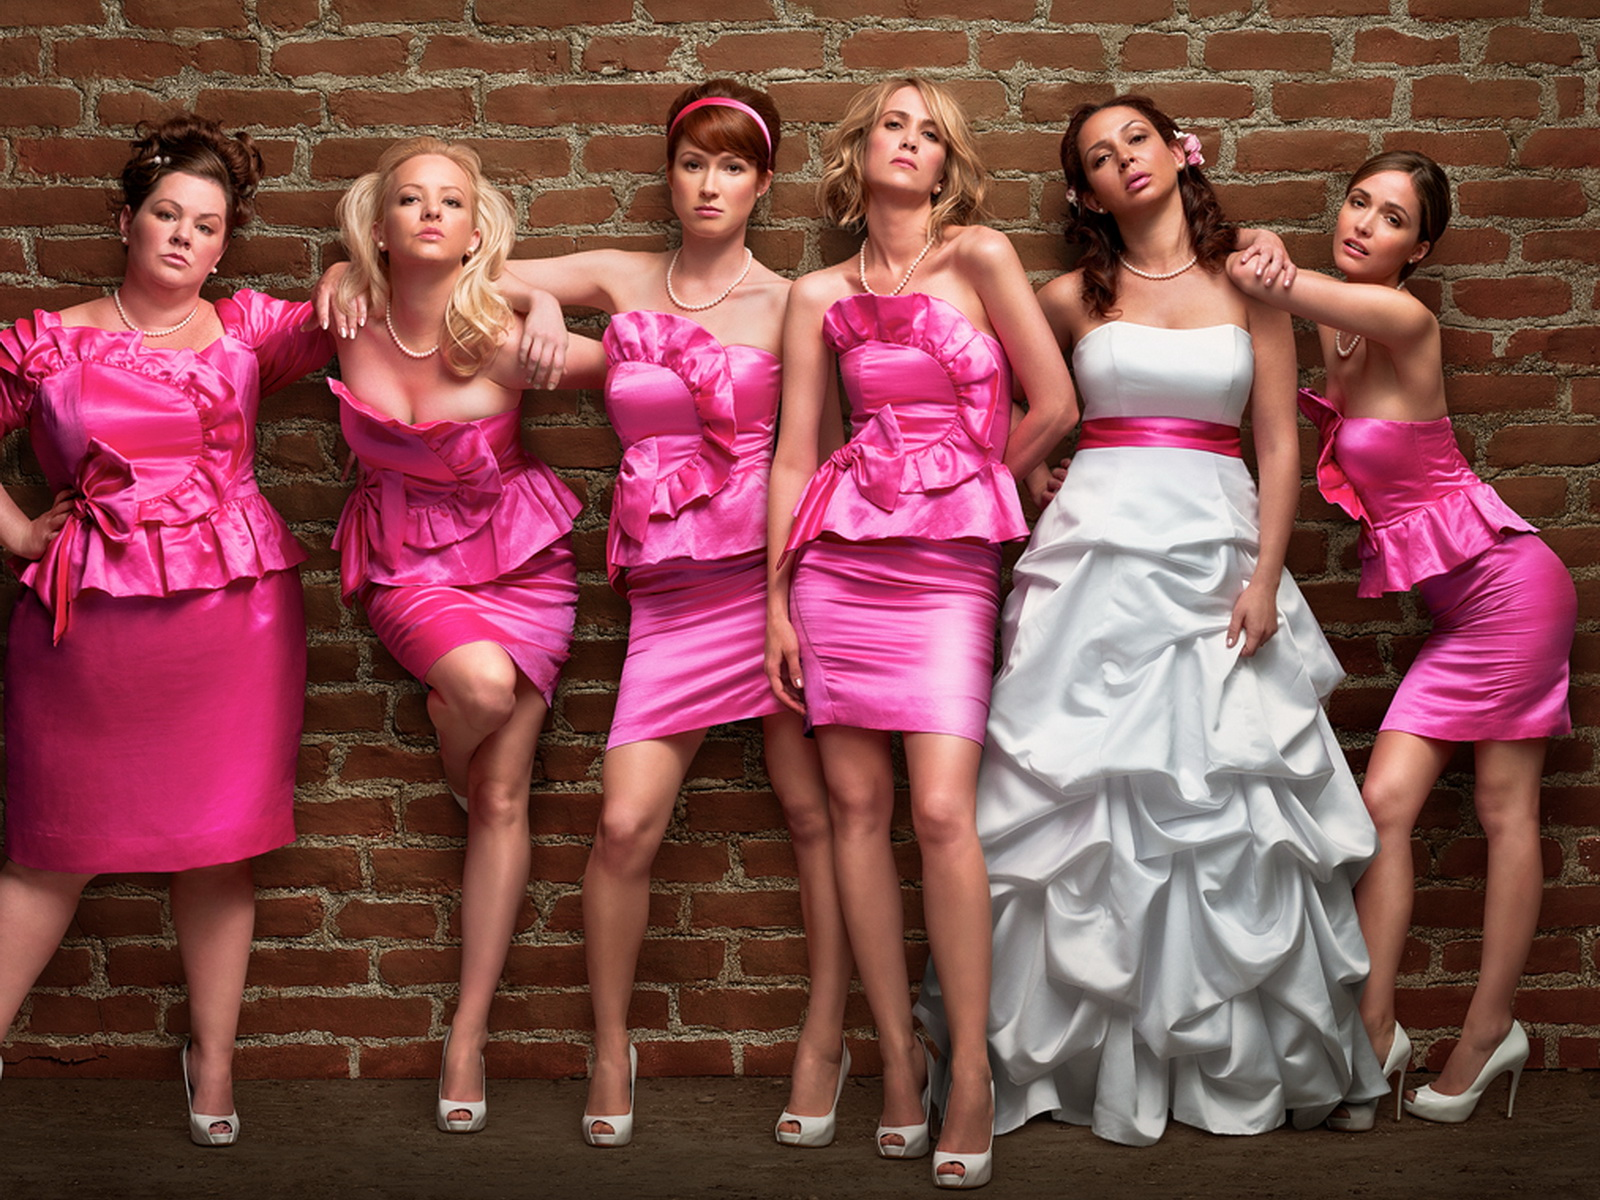 What Comparing Bridesmaids and The Hangover Reveals About Hollywoodu0027s Gender Problem | IndieWire  sc 1 st  IndieWire & What Comparing Bridesmaids and The Hangover Reveals About ...